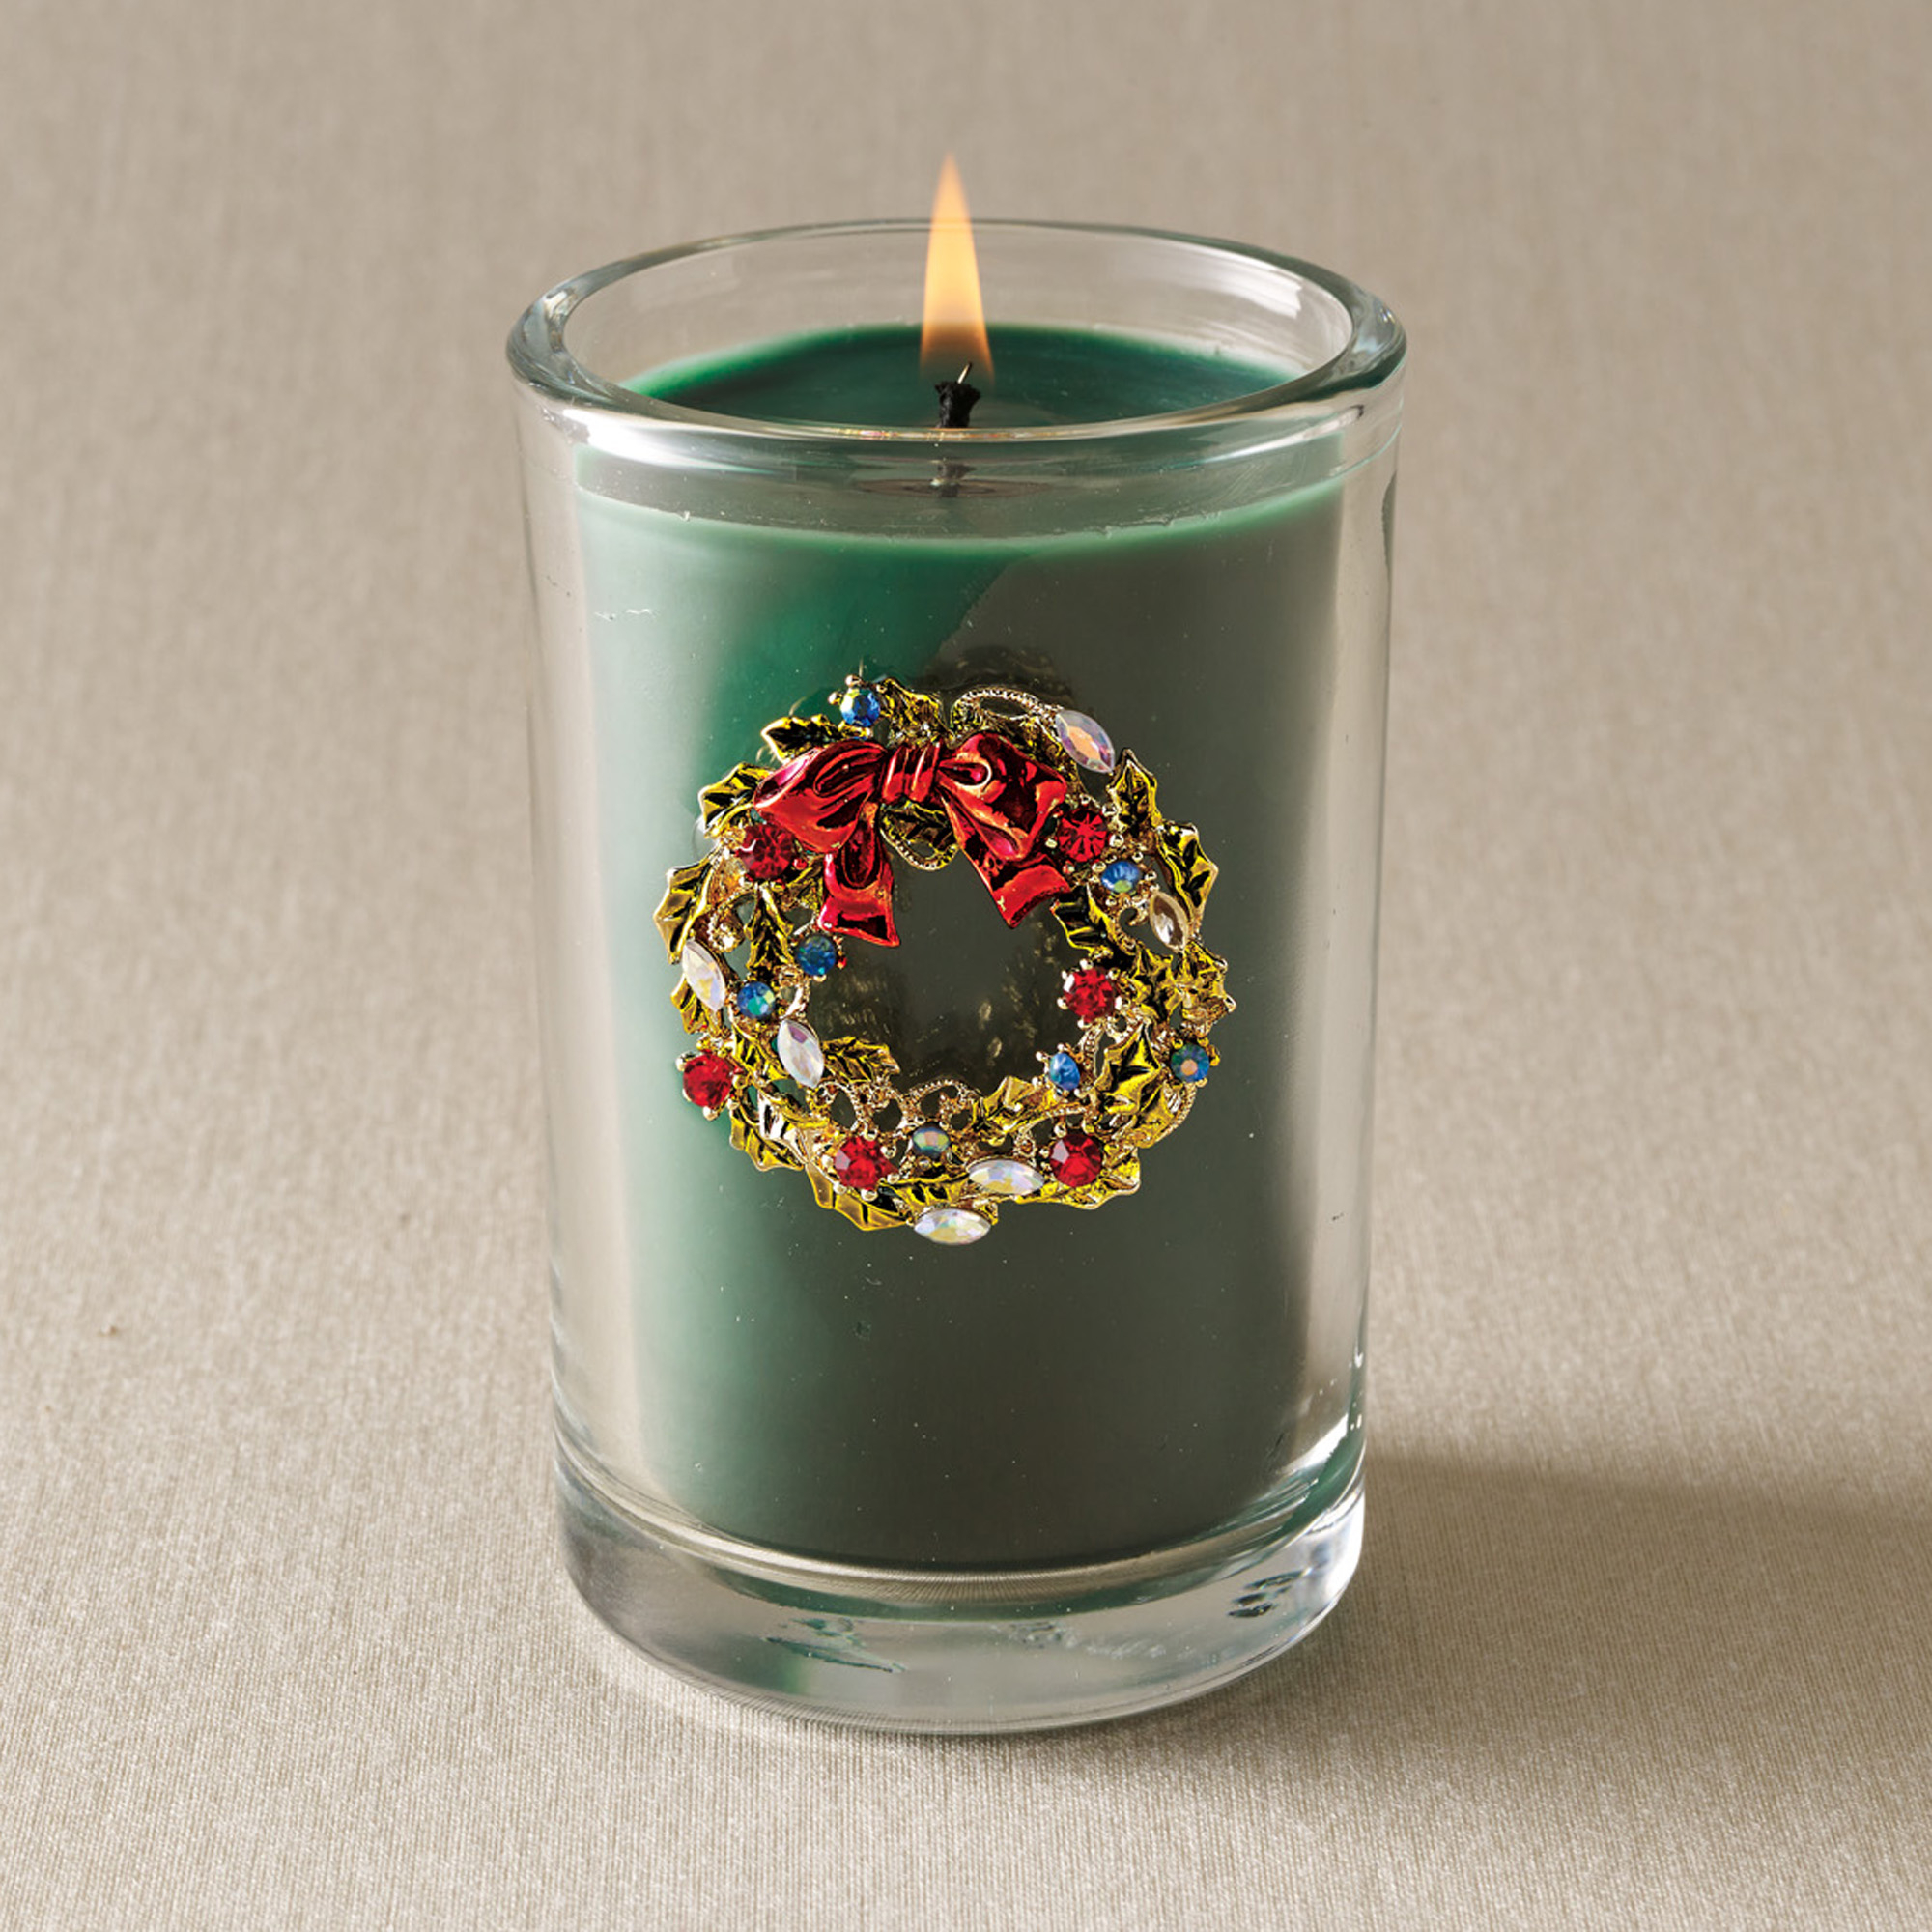 Swarovski Wreath Candle